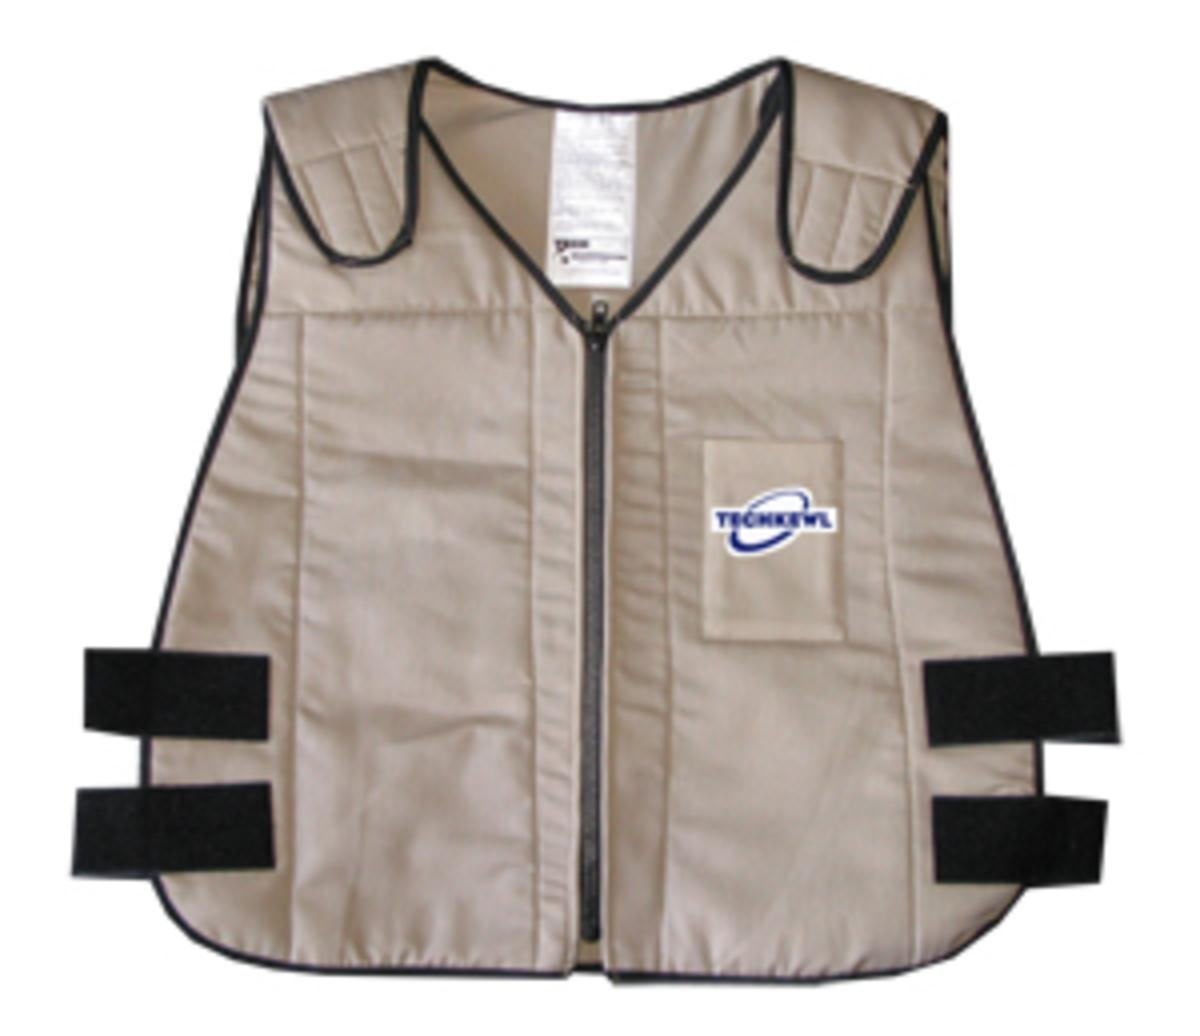 TechKewl 6626-RB-XXL Phase Change Cooling Vest by TechKewl (Image #4)